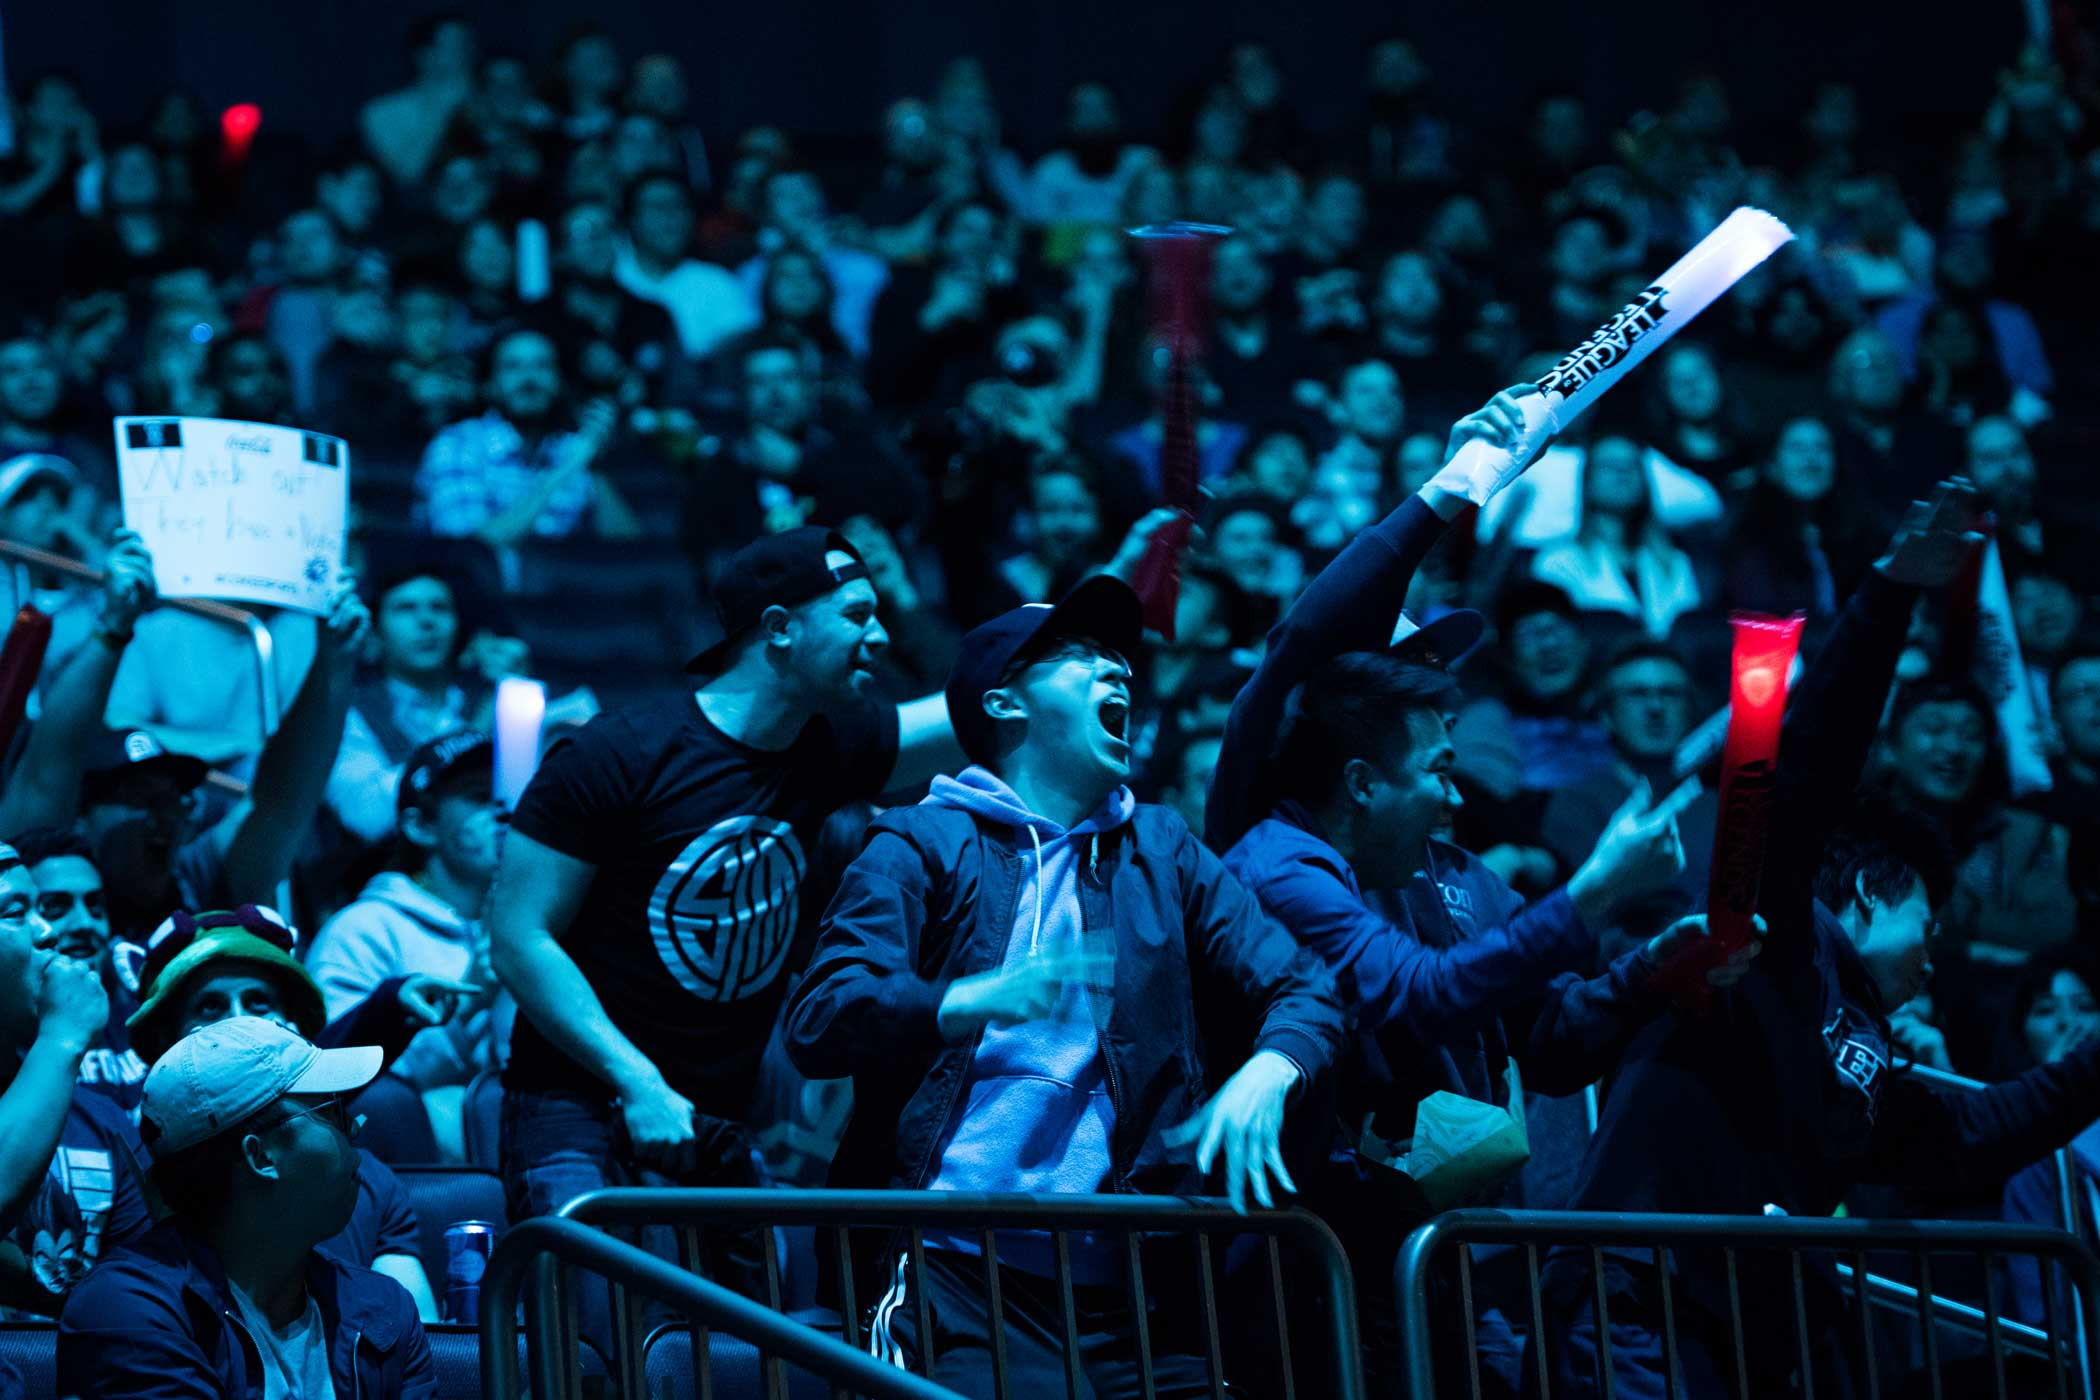 Fans of H2k cheer for the team after they take a surprise first kill in the first game of their best of five match.